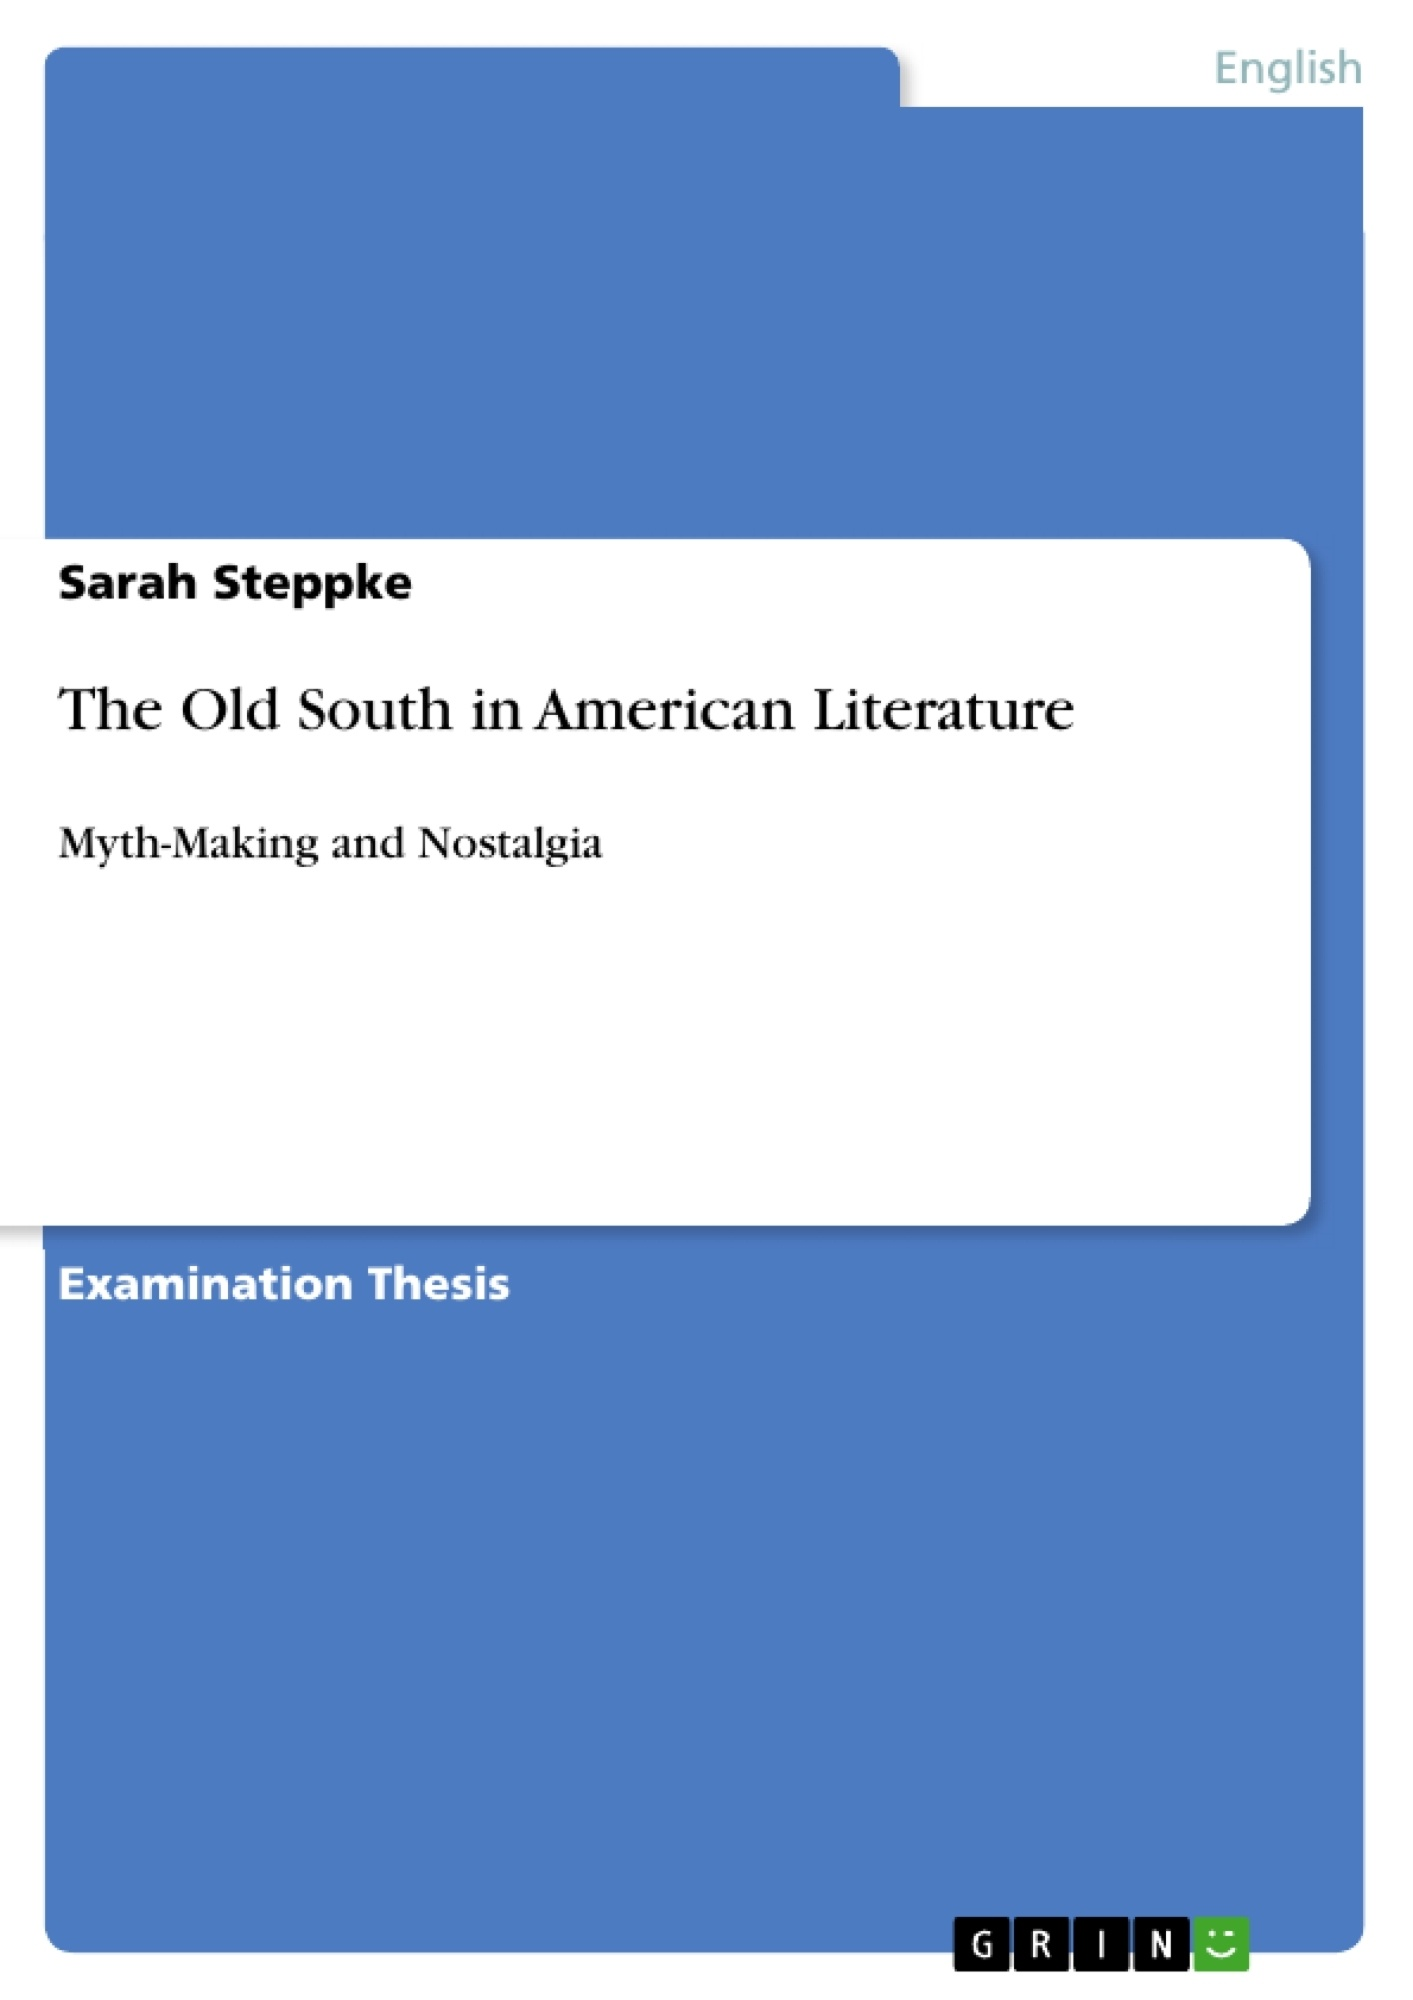 The Old South In American Literature - GRIN